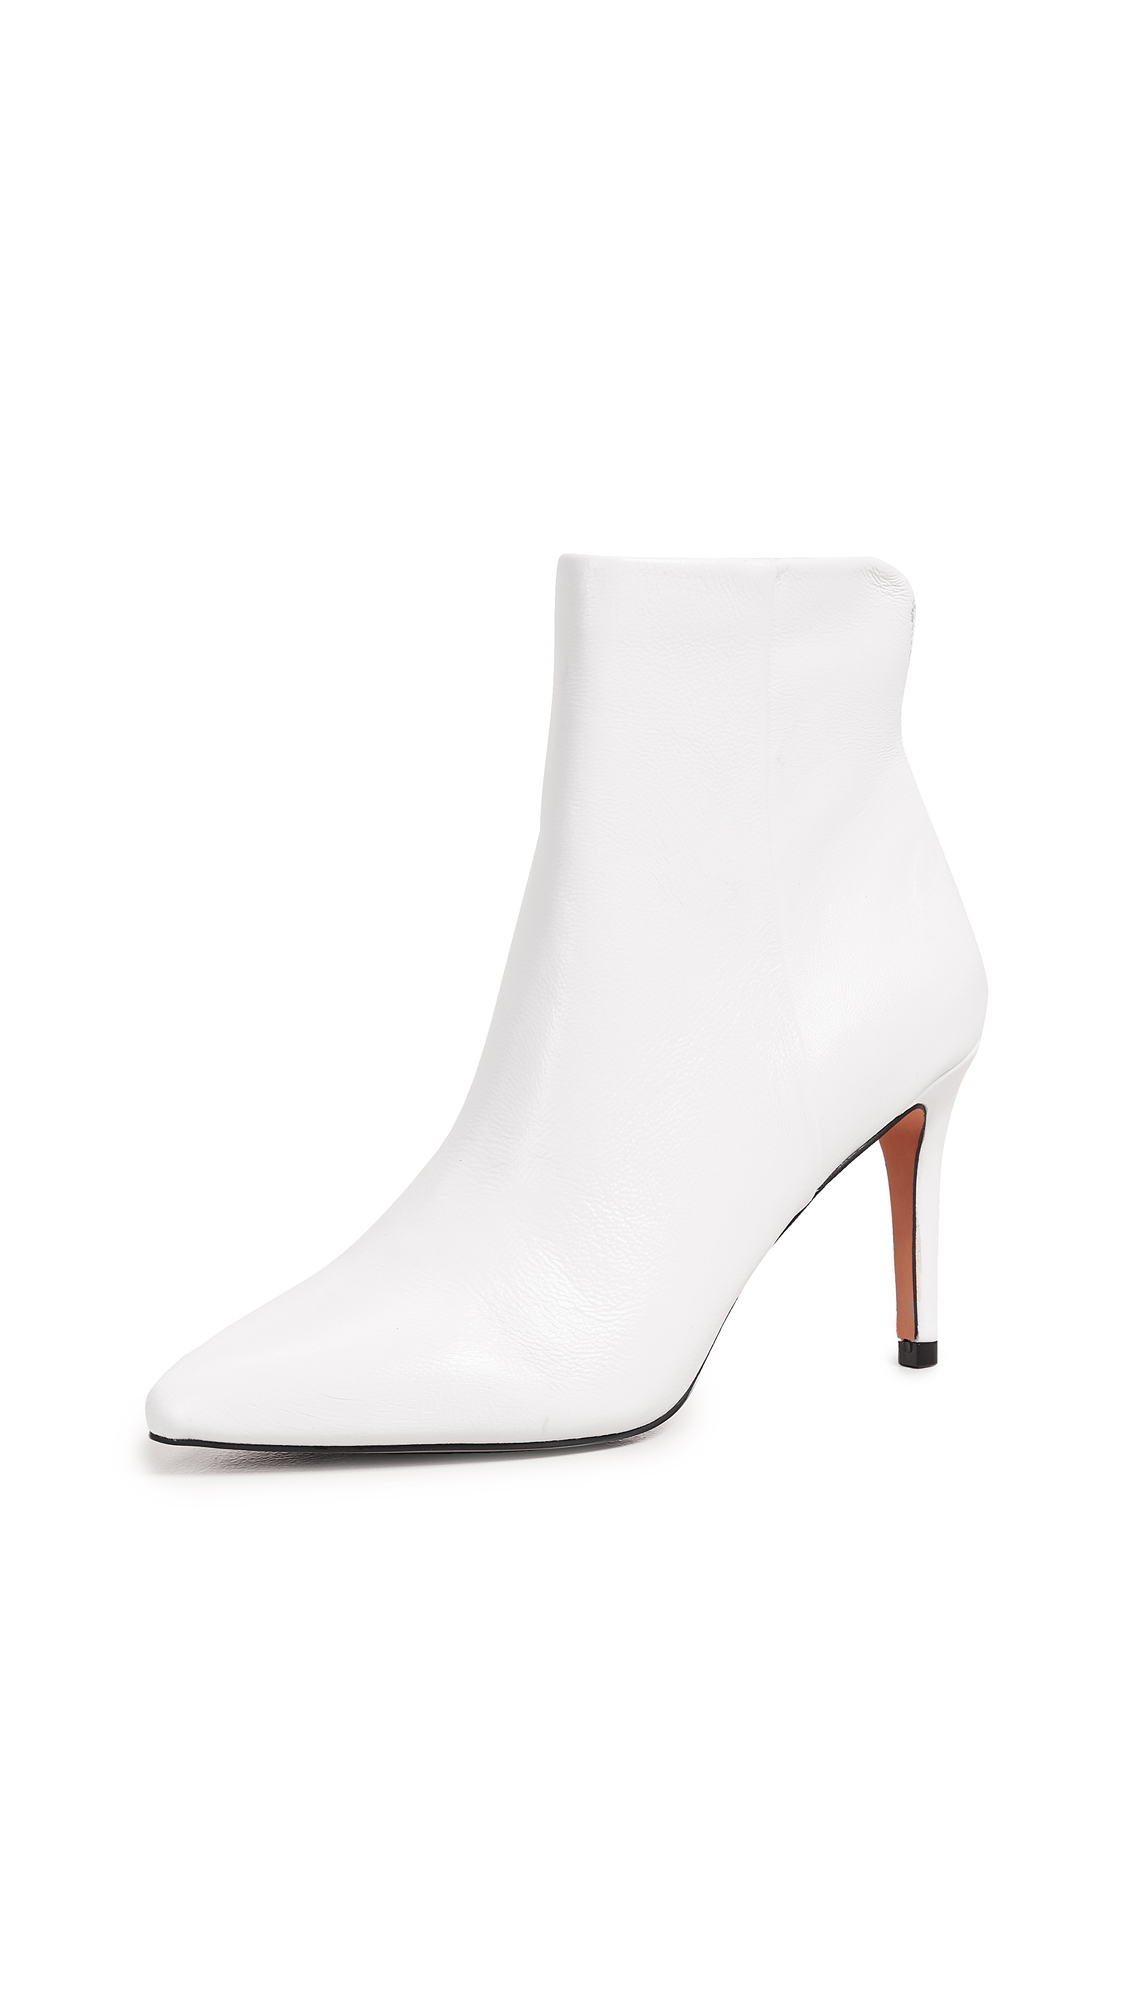 Steven Leila Pointed Toe Booties - White